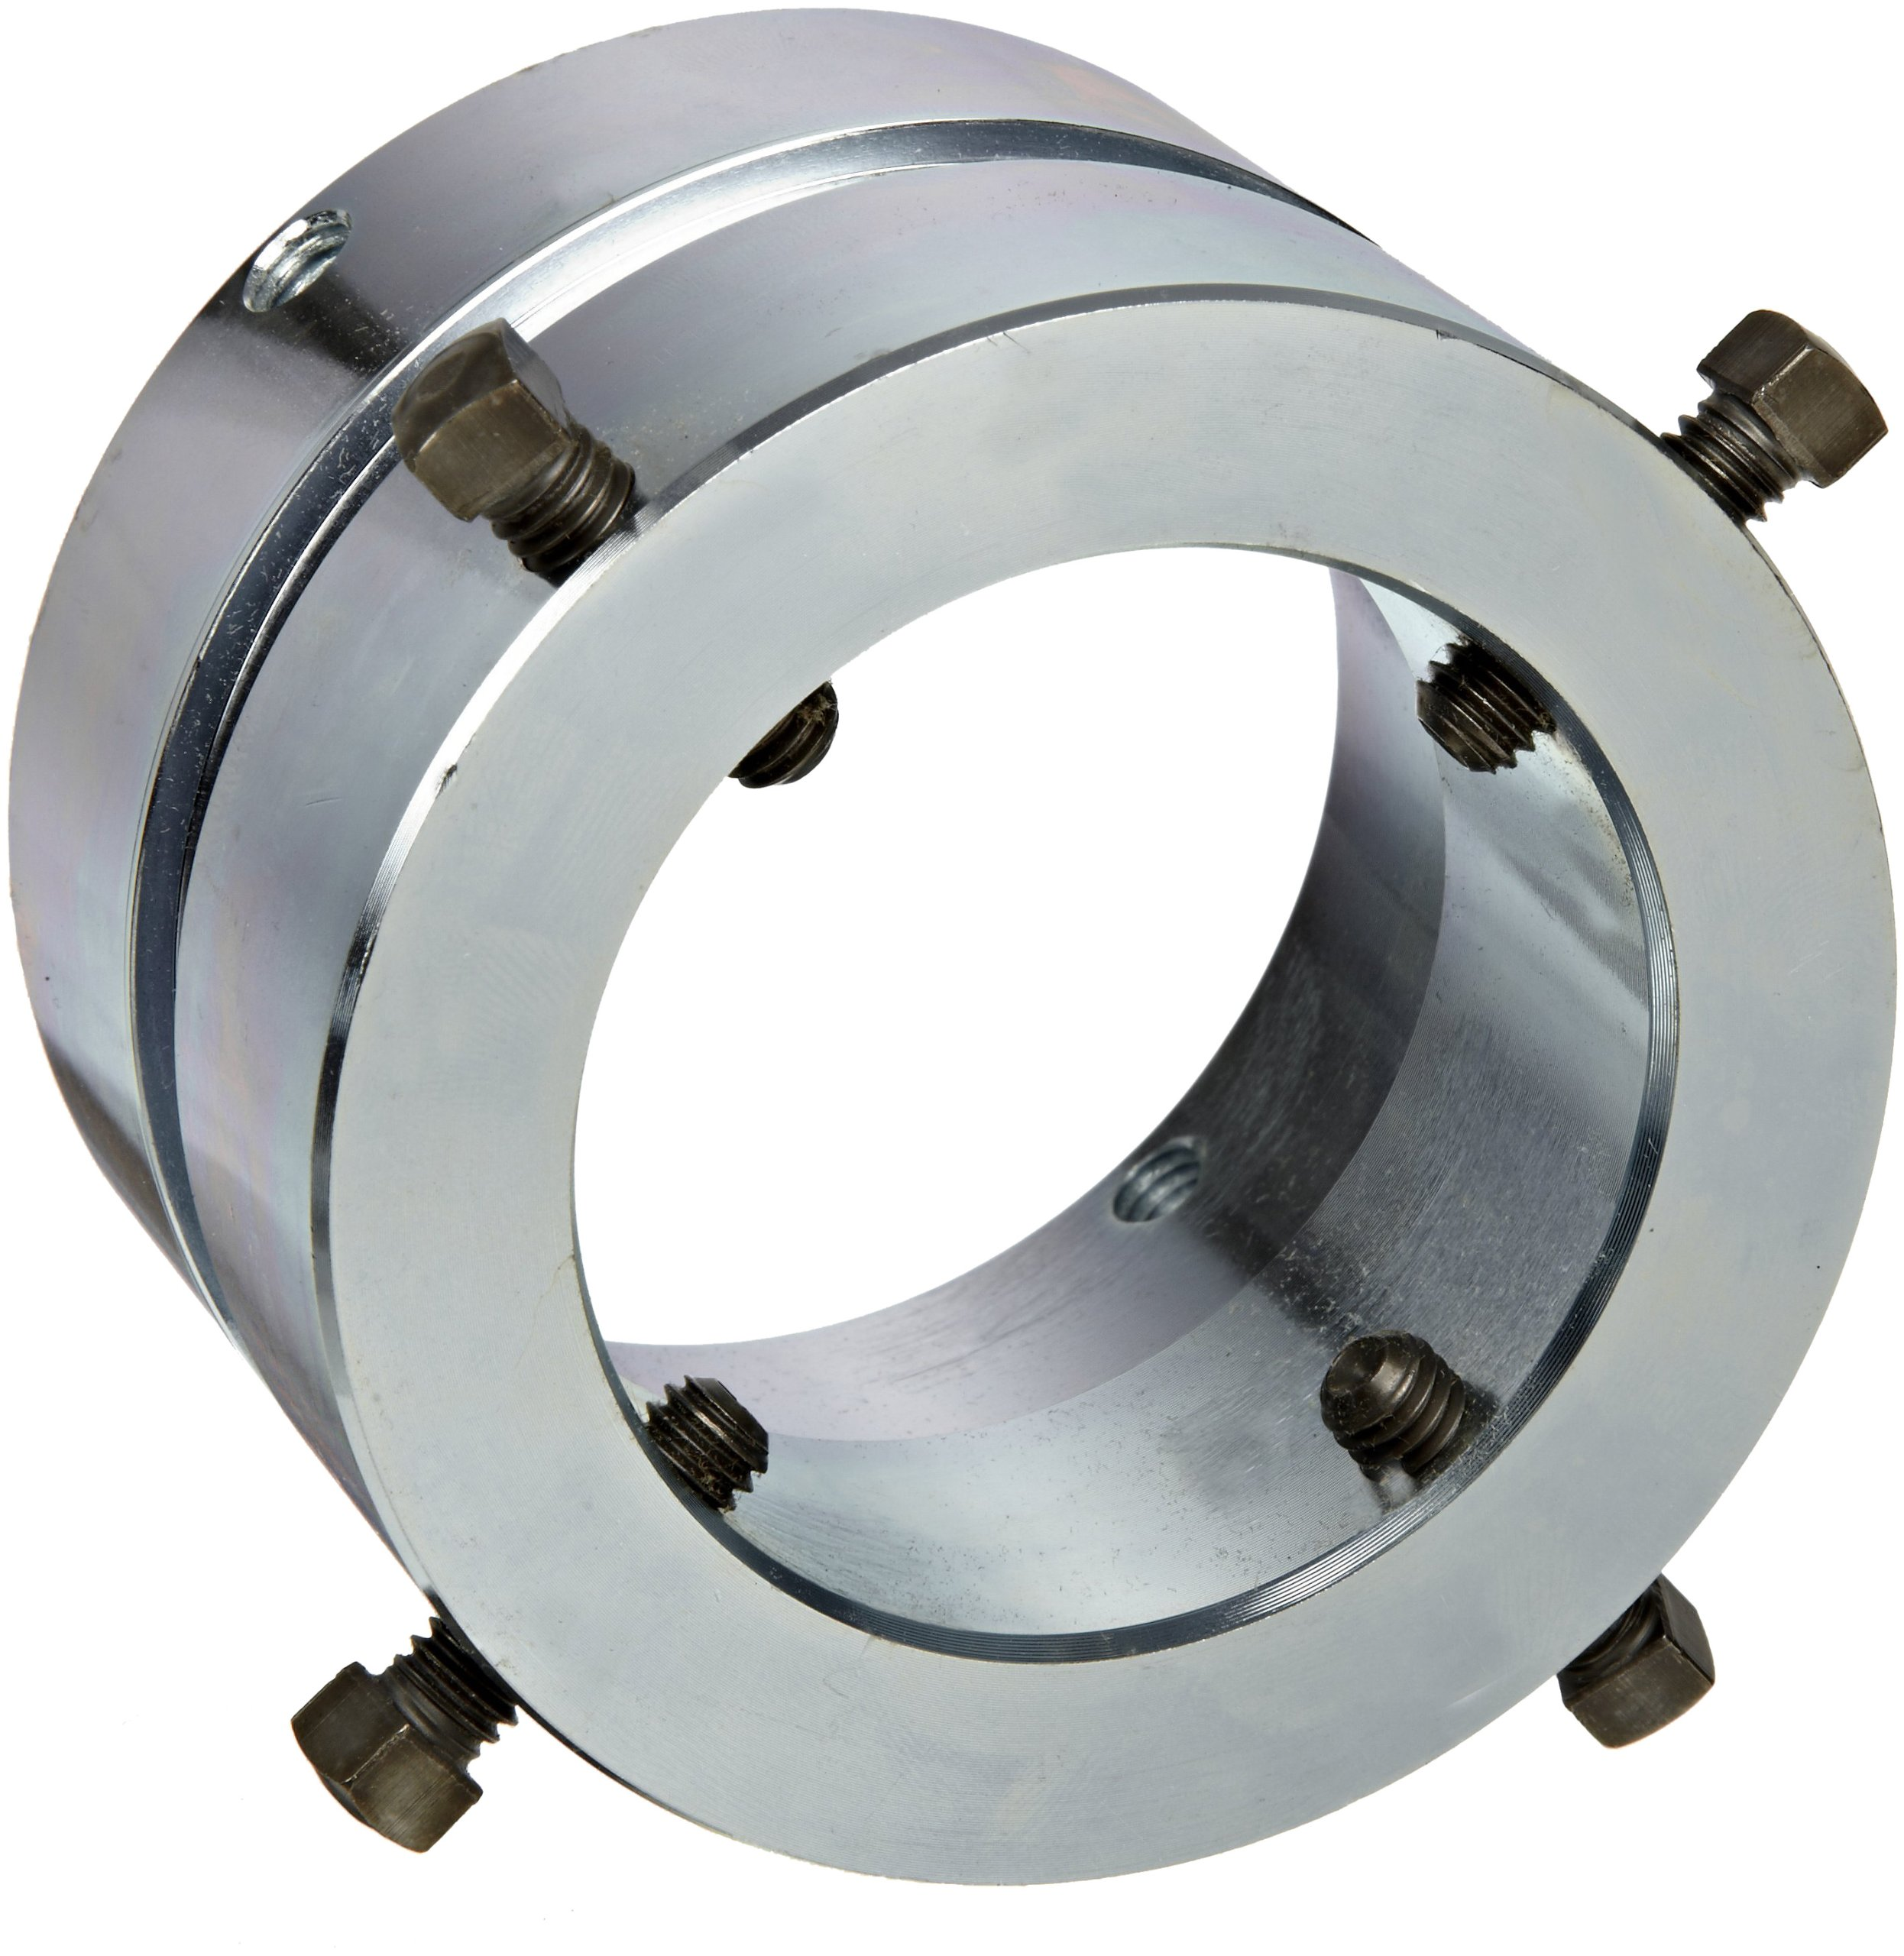 """Posi Lock HP-50 Extra Large Hub Collar, 0 to 3"""" Hub Range, For Use With HP-1 and HP-2"""